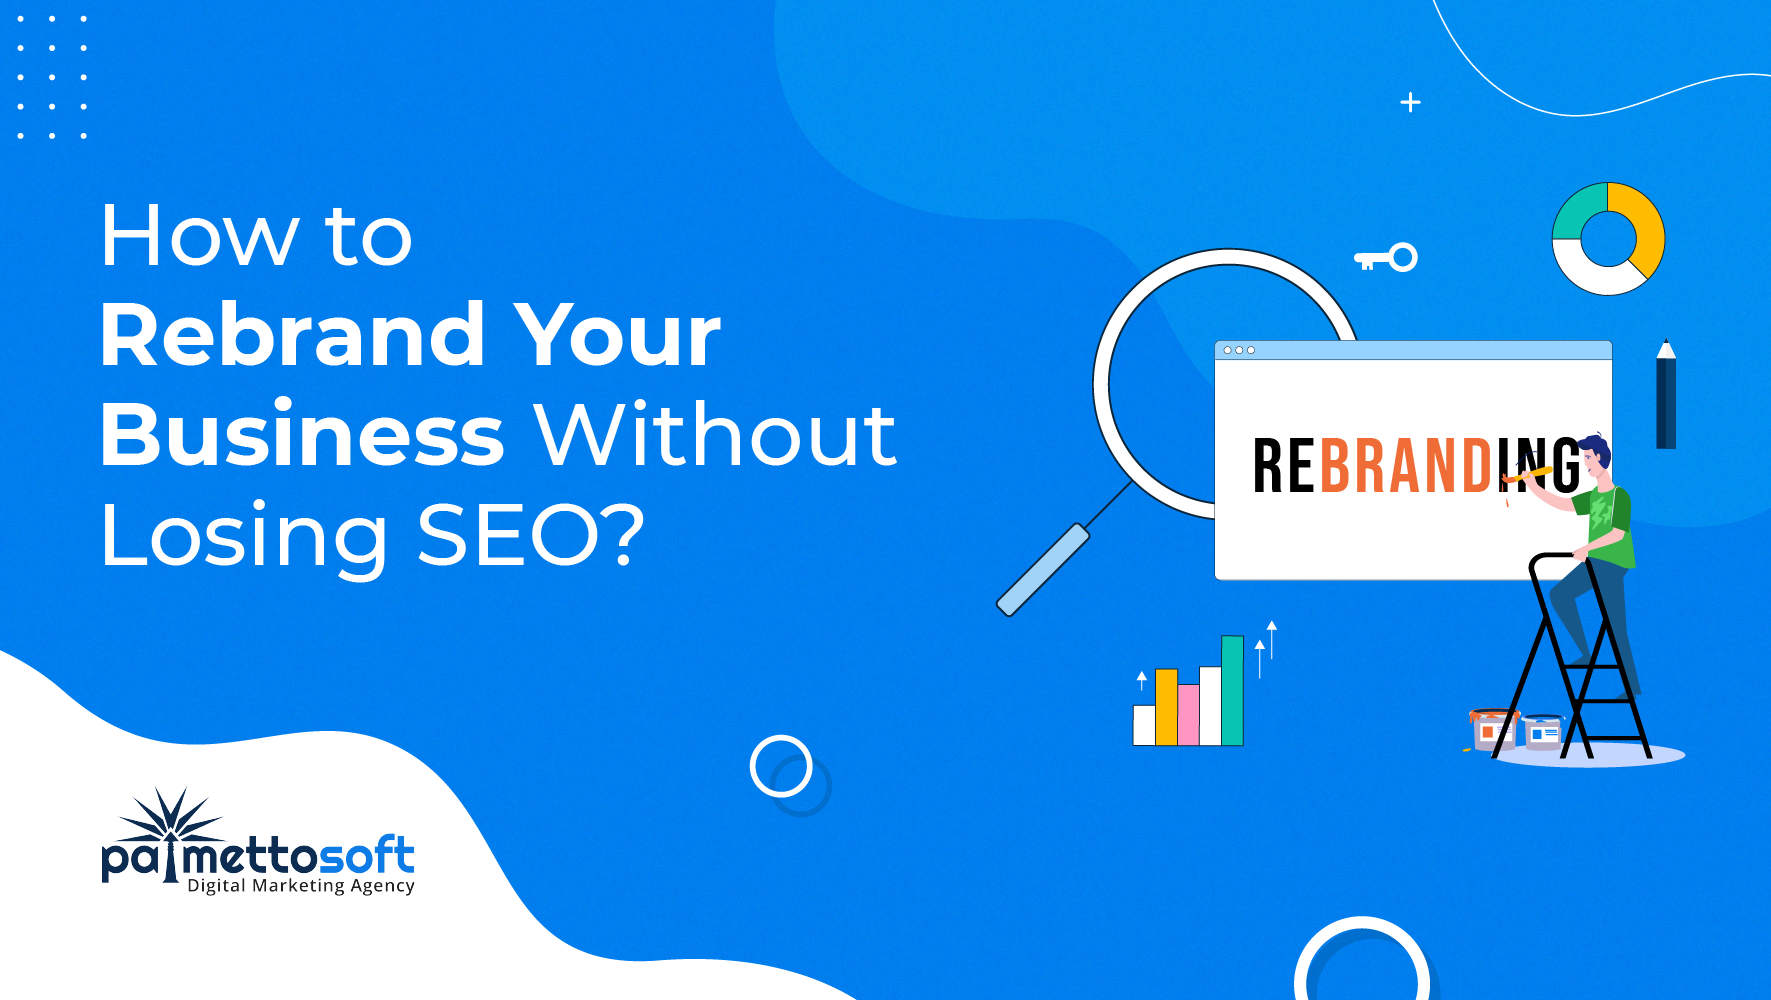 How to Rebrand Your Business Online Without Losing SEO